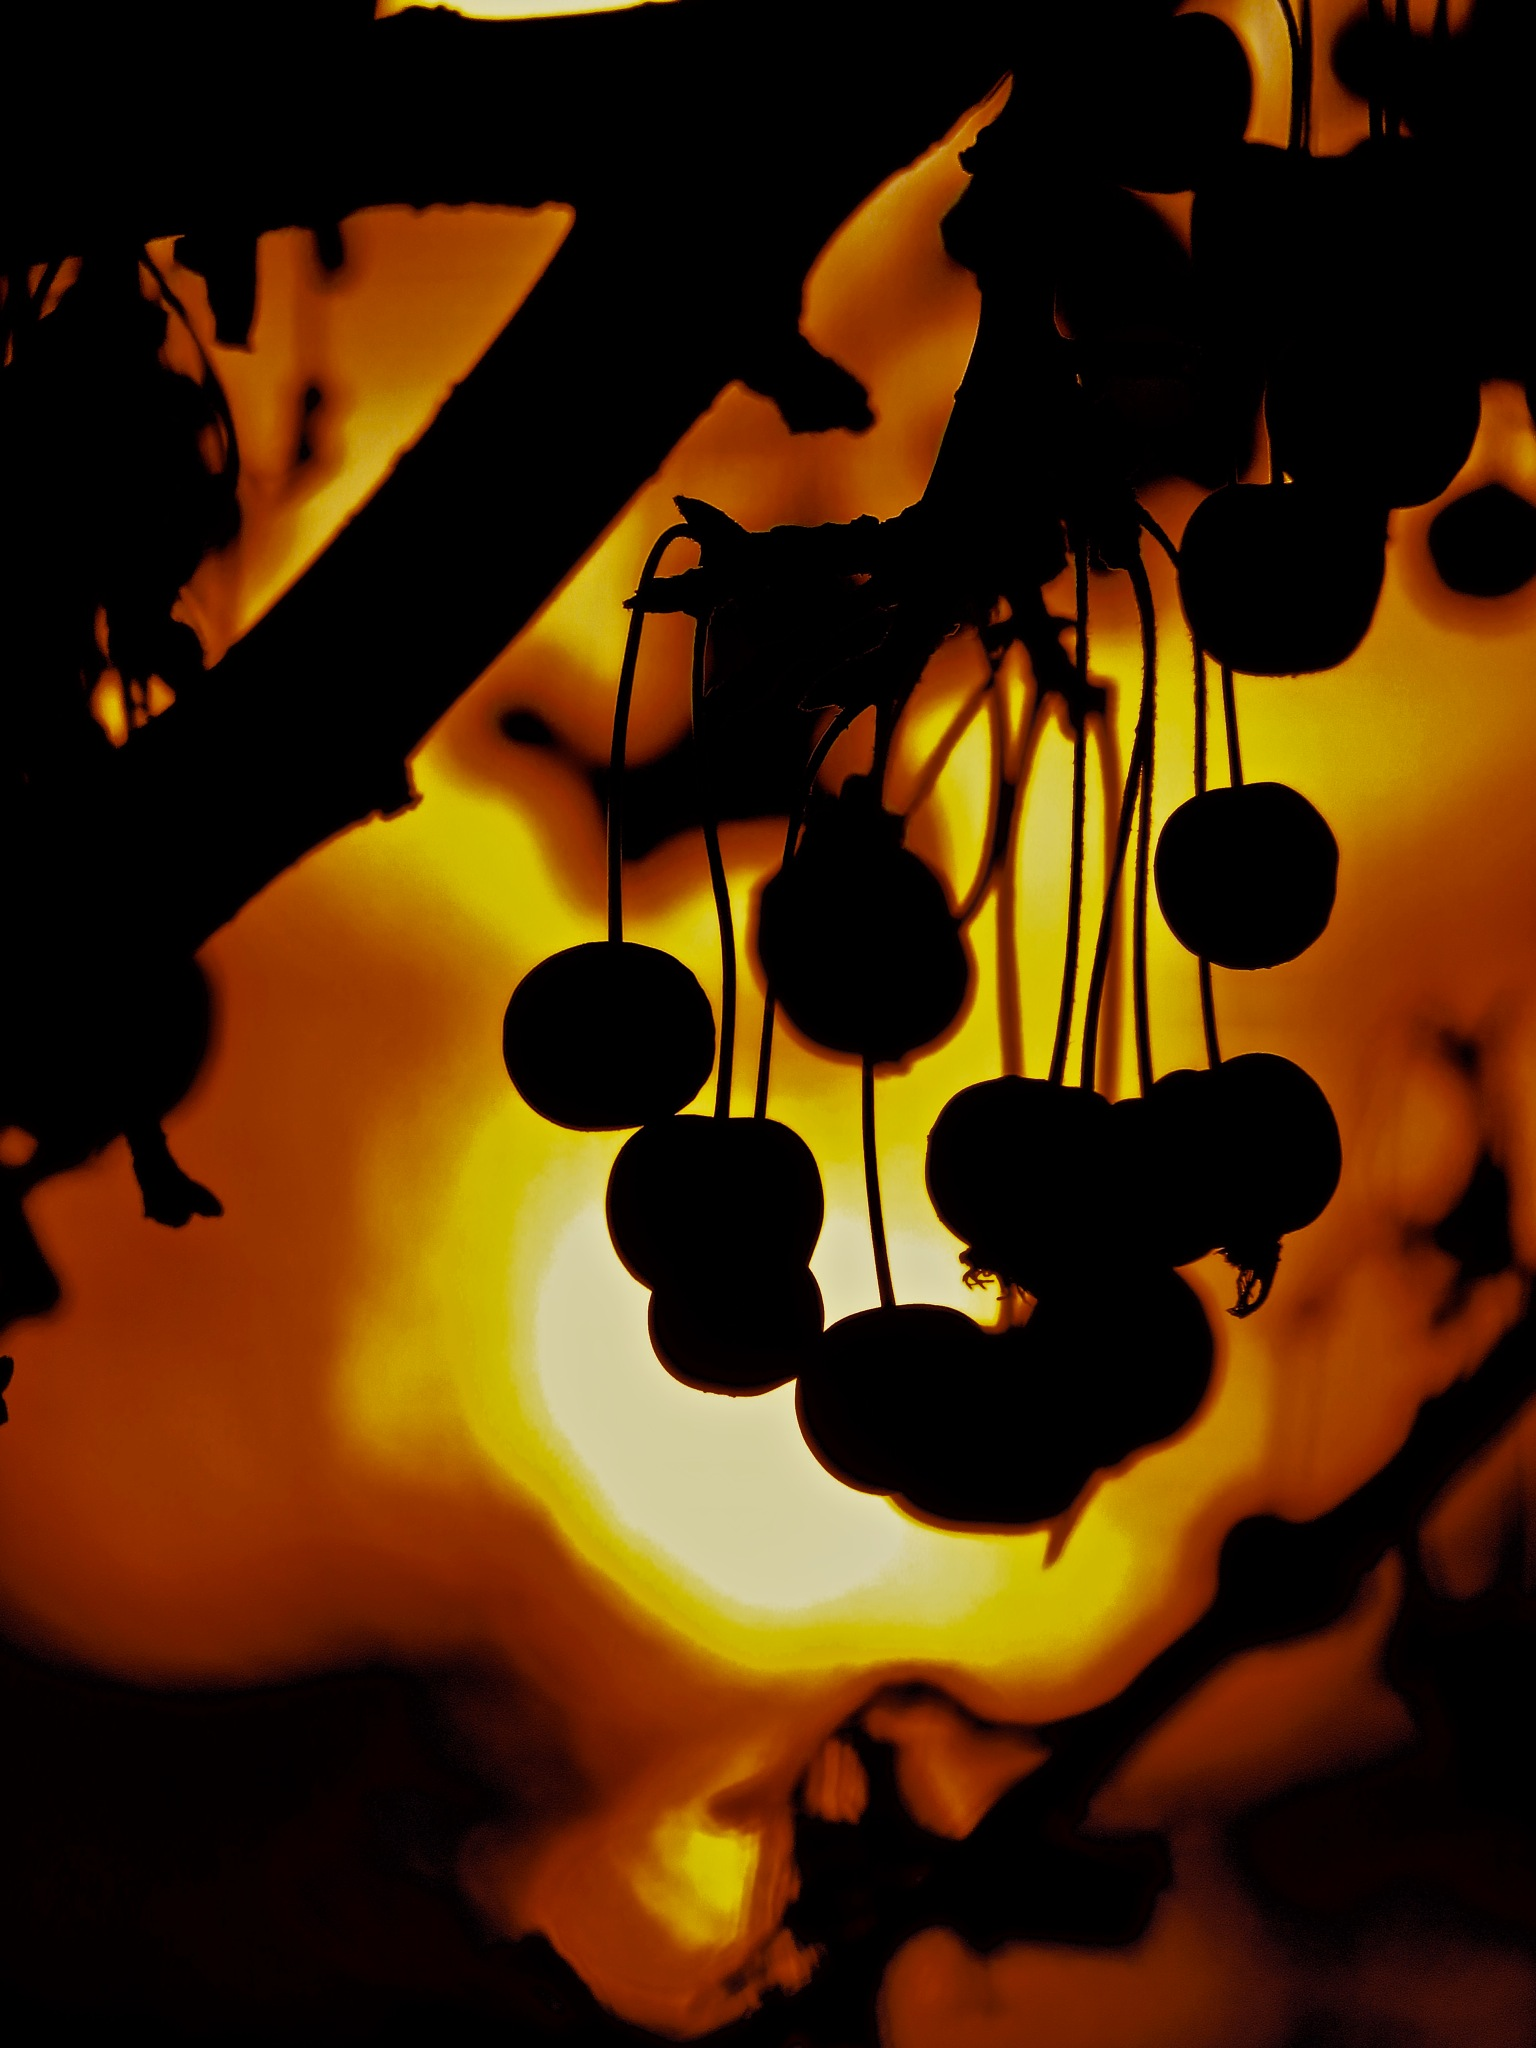 berries at twilight always makes for a photo delight !! by David Devion